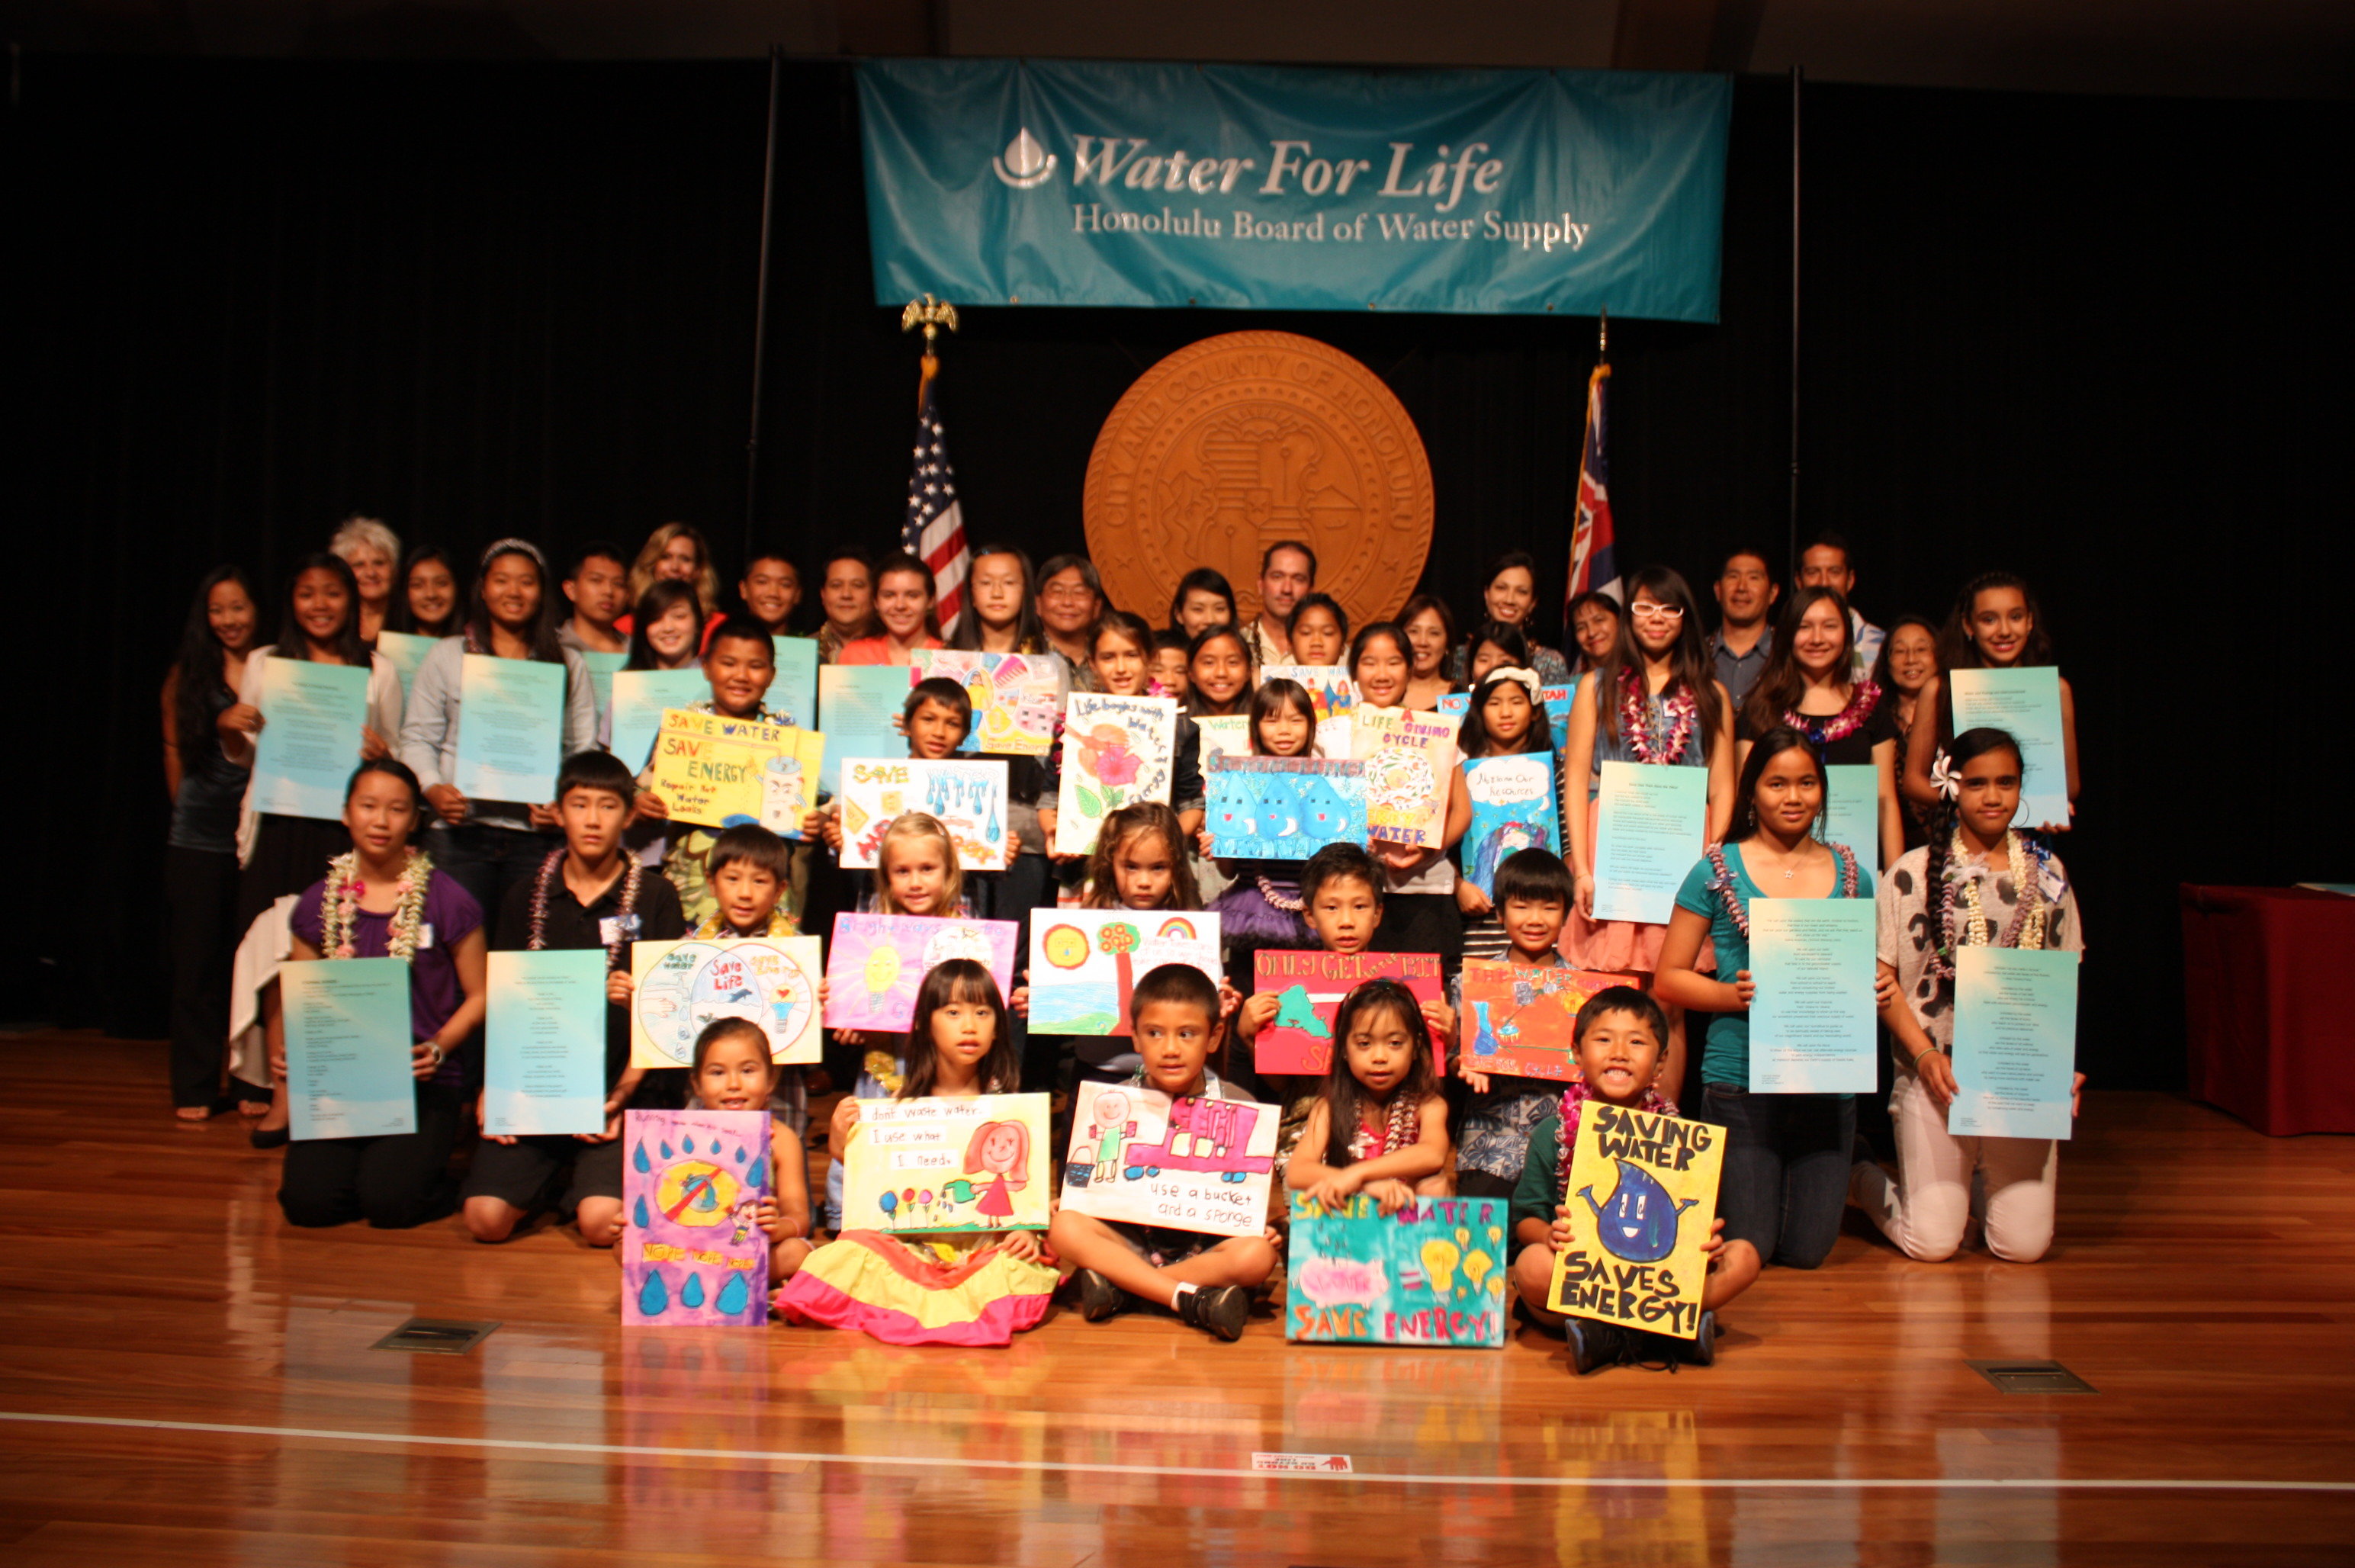 2013 poster and poetry contest winners